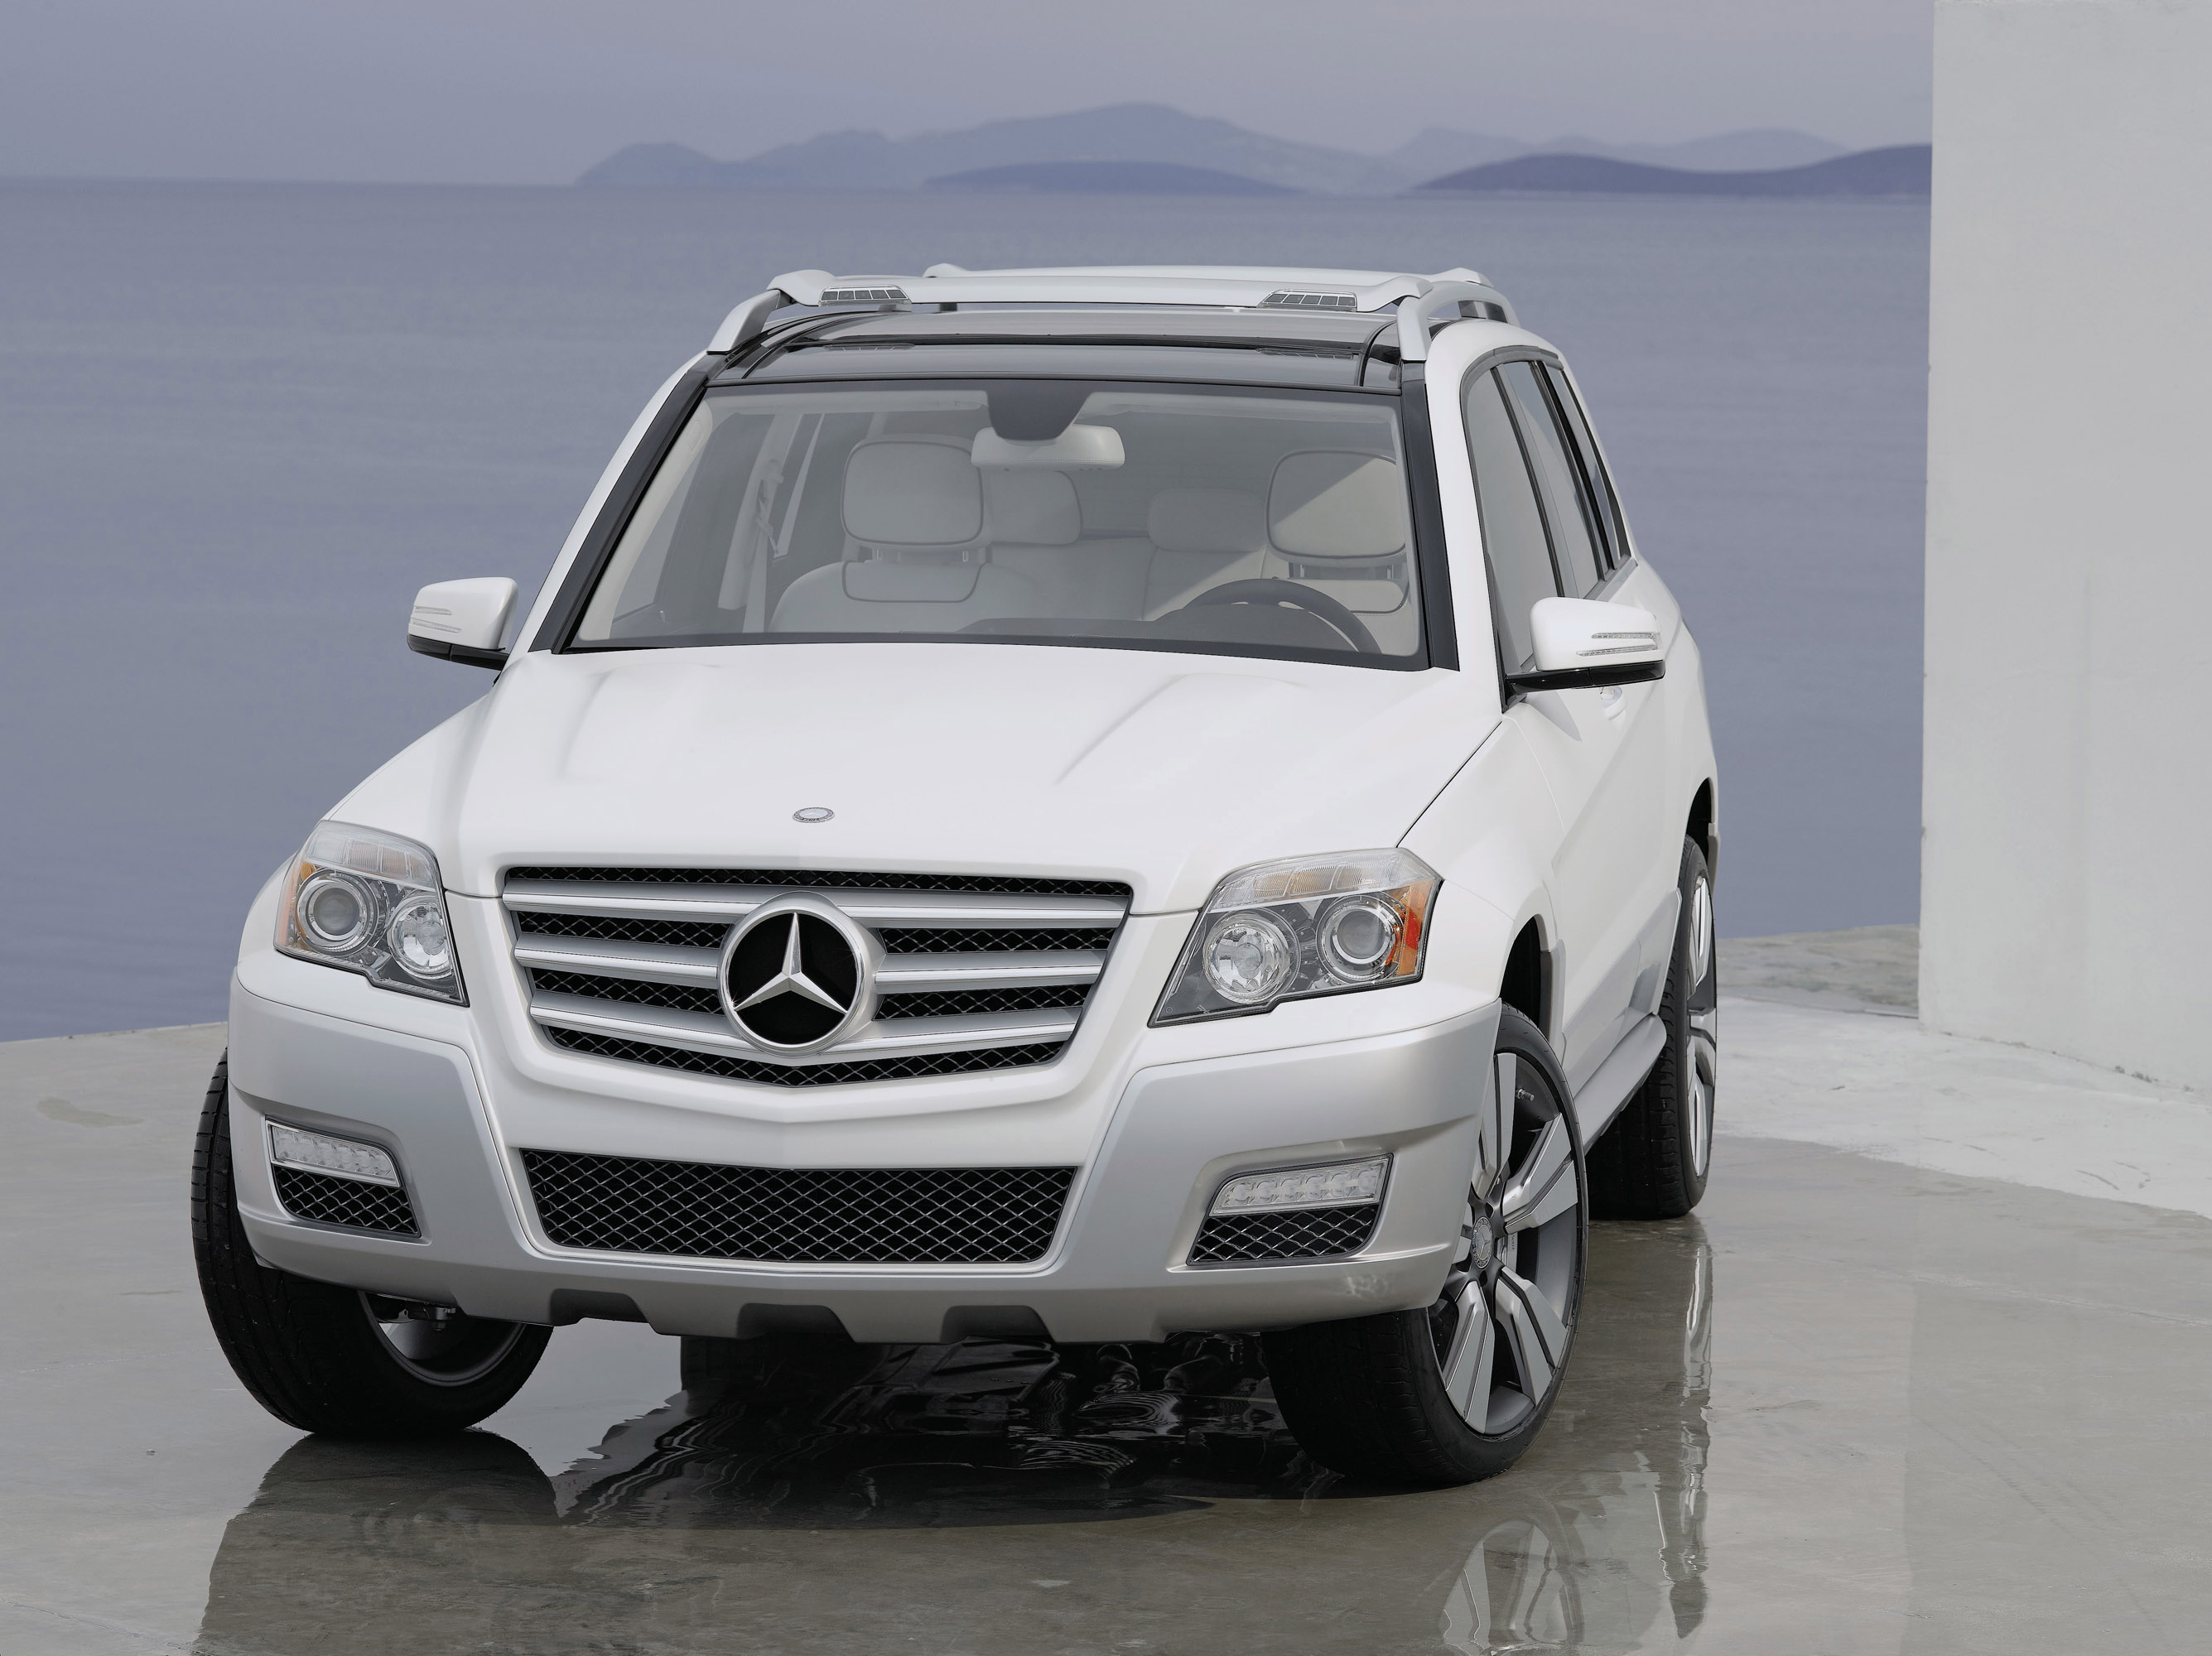 Mercedes-Benz GLK Freeside Concept photo #1